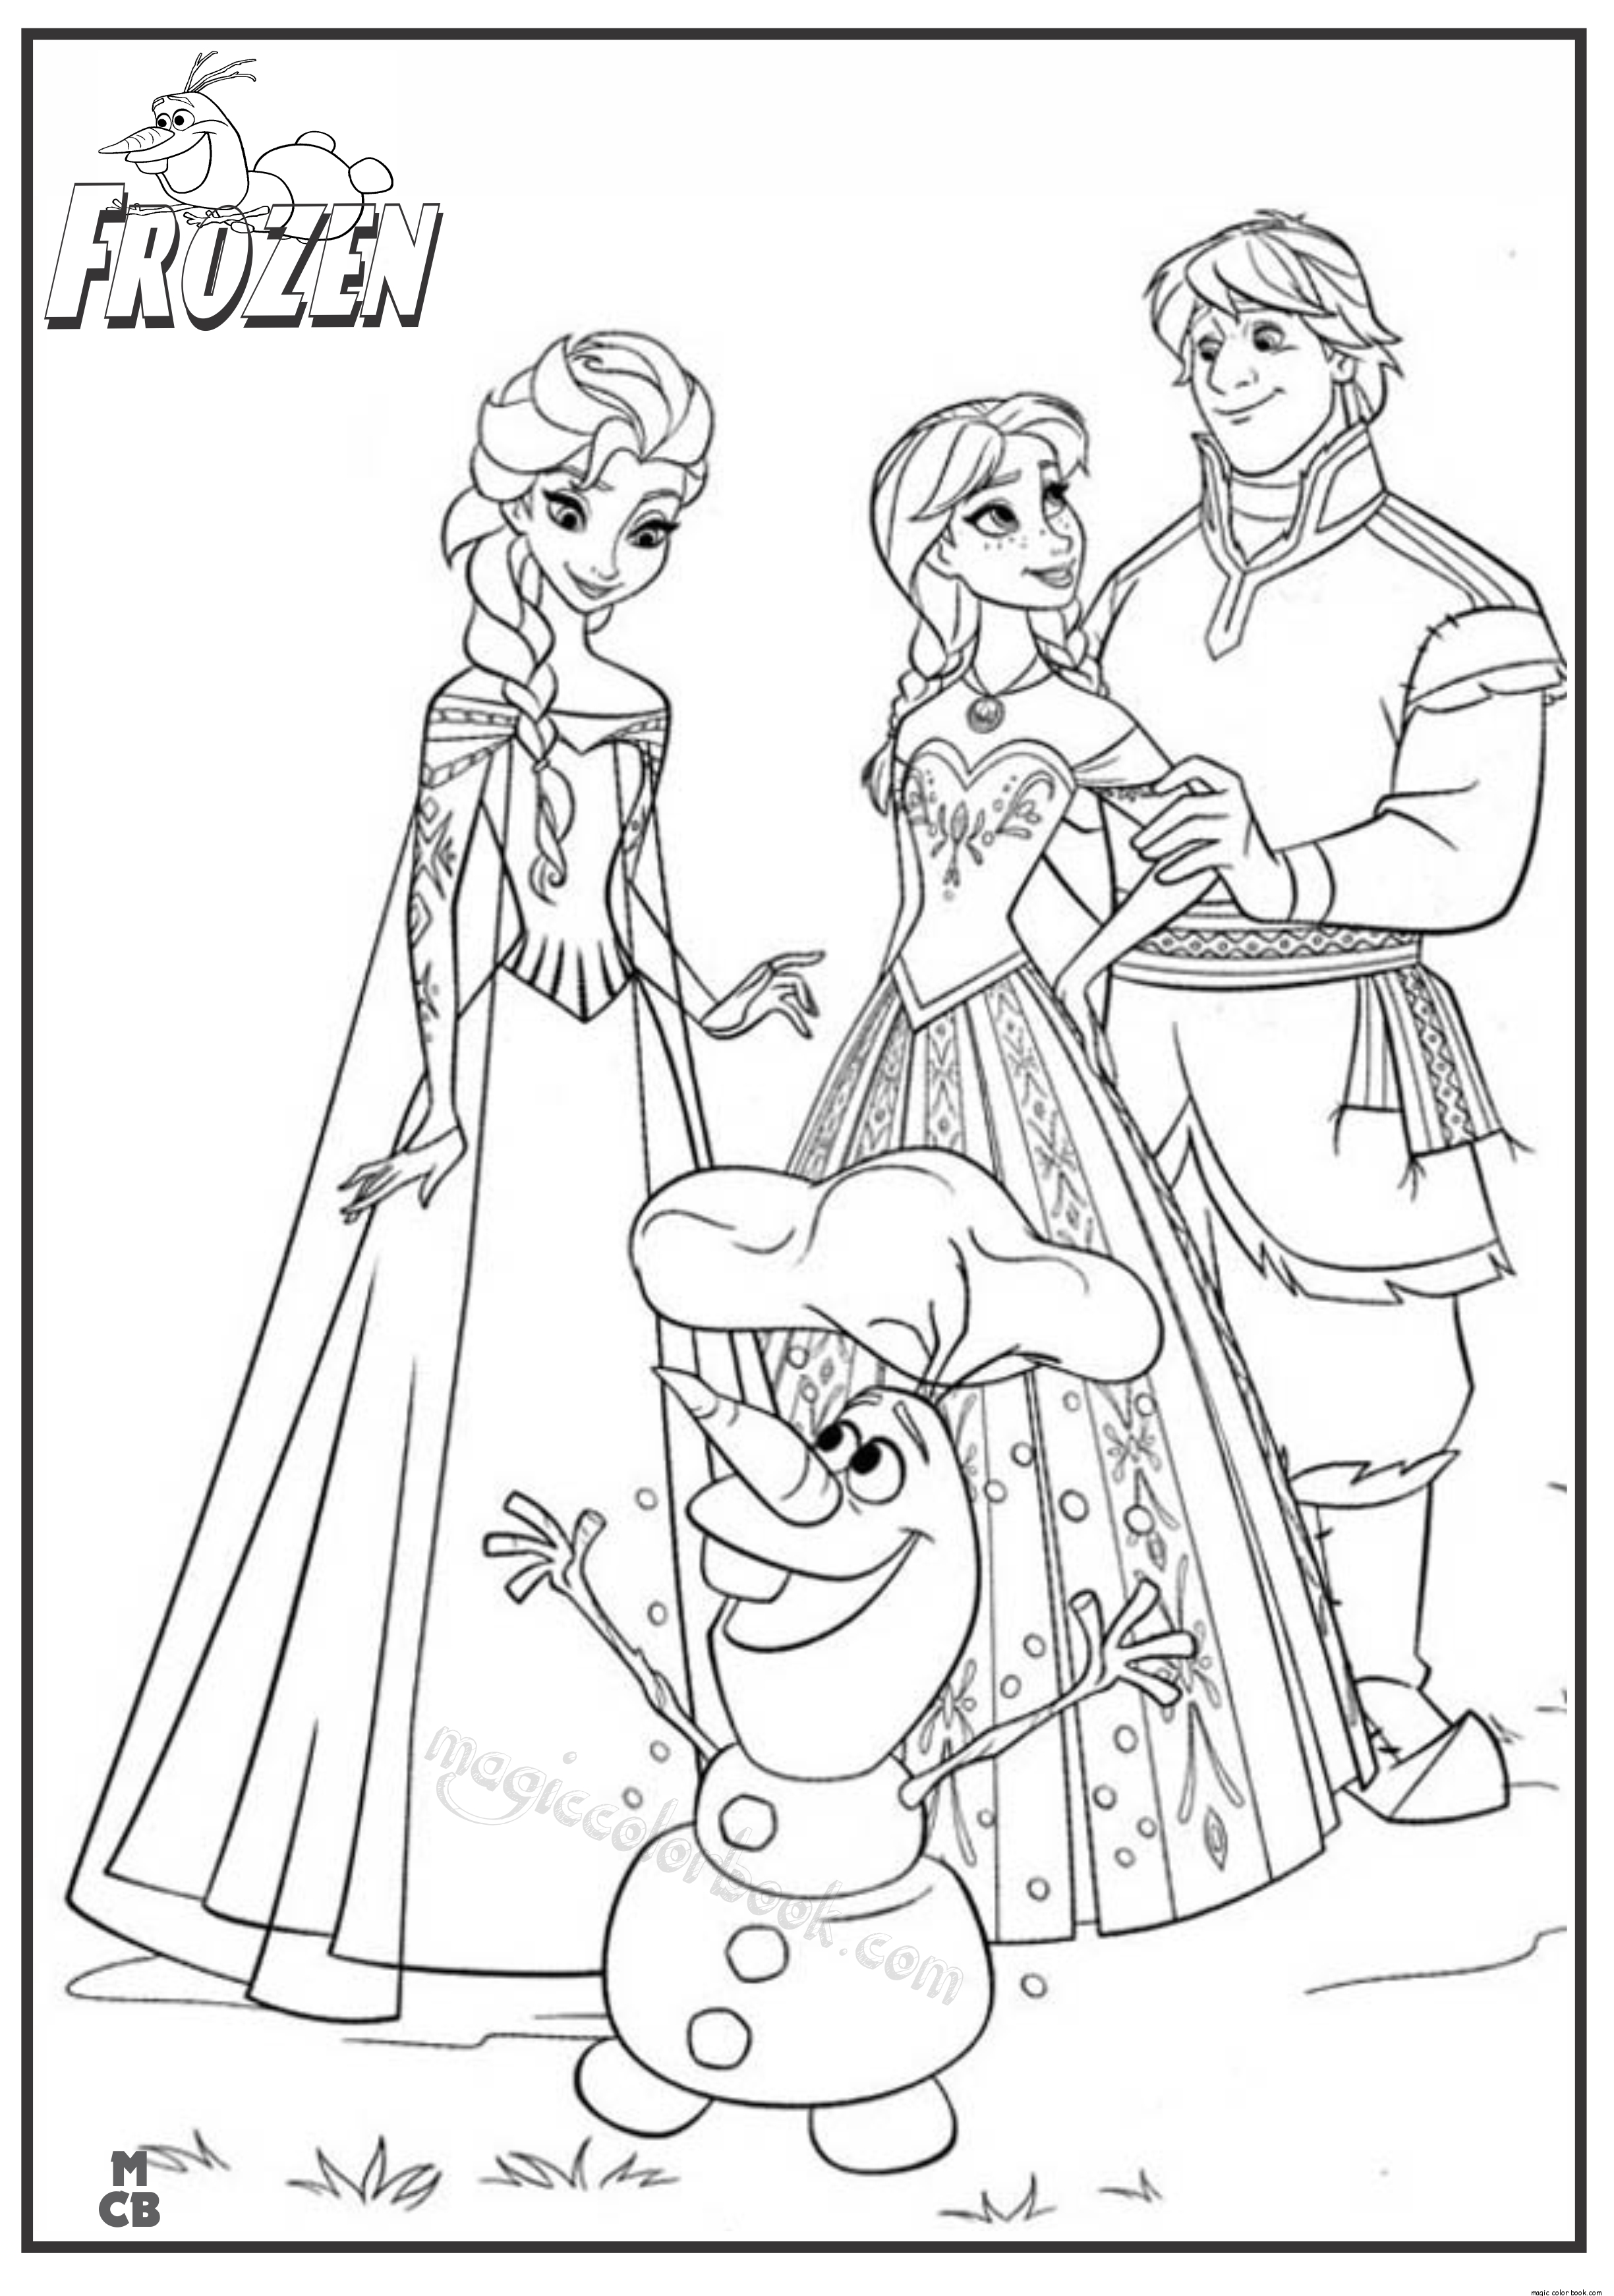 Frozen Coloring Page - Coloring Home - Free Printable Frozen Coloring Pages